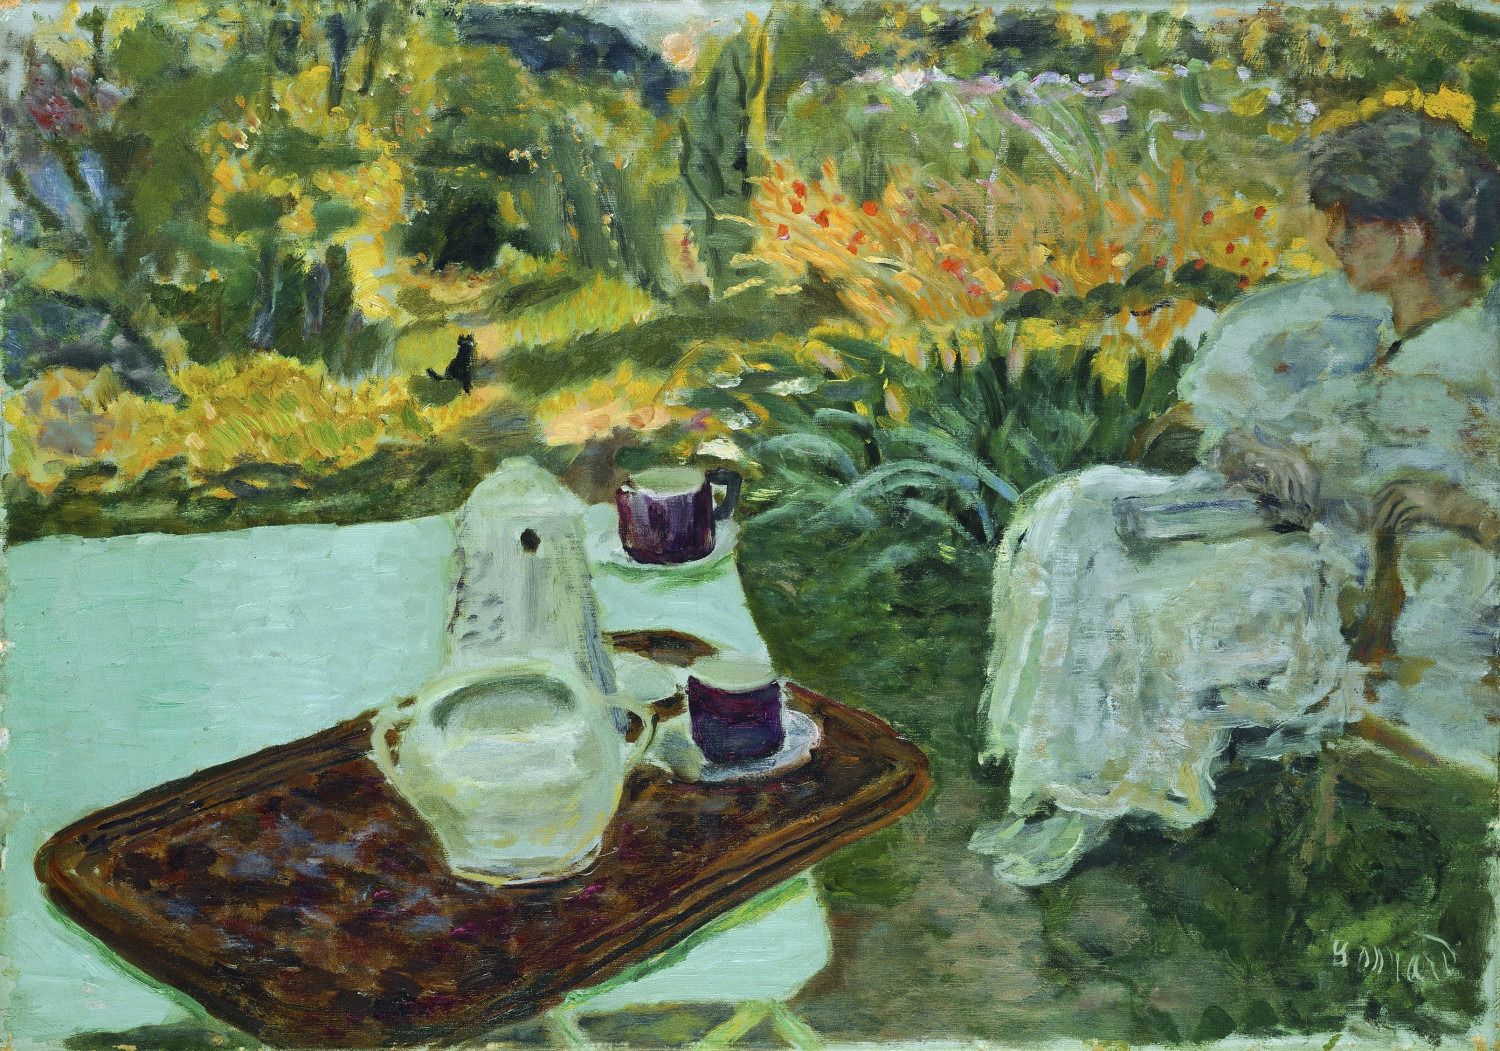 Pierre Bonnard – The Colour of Memory